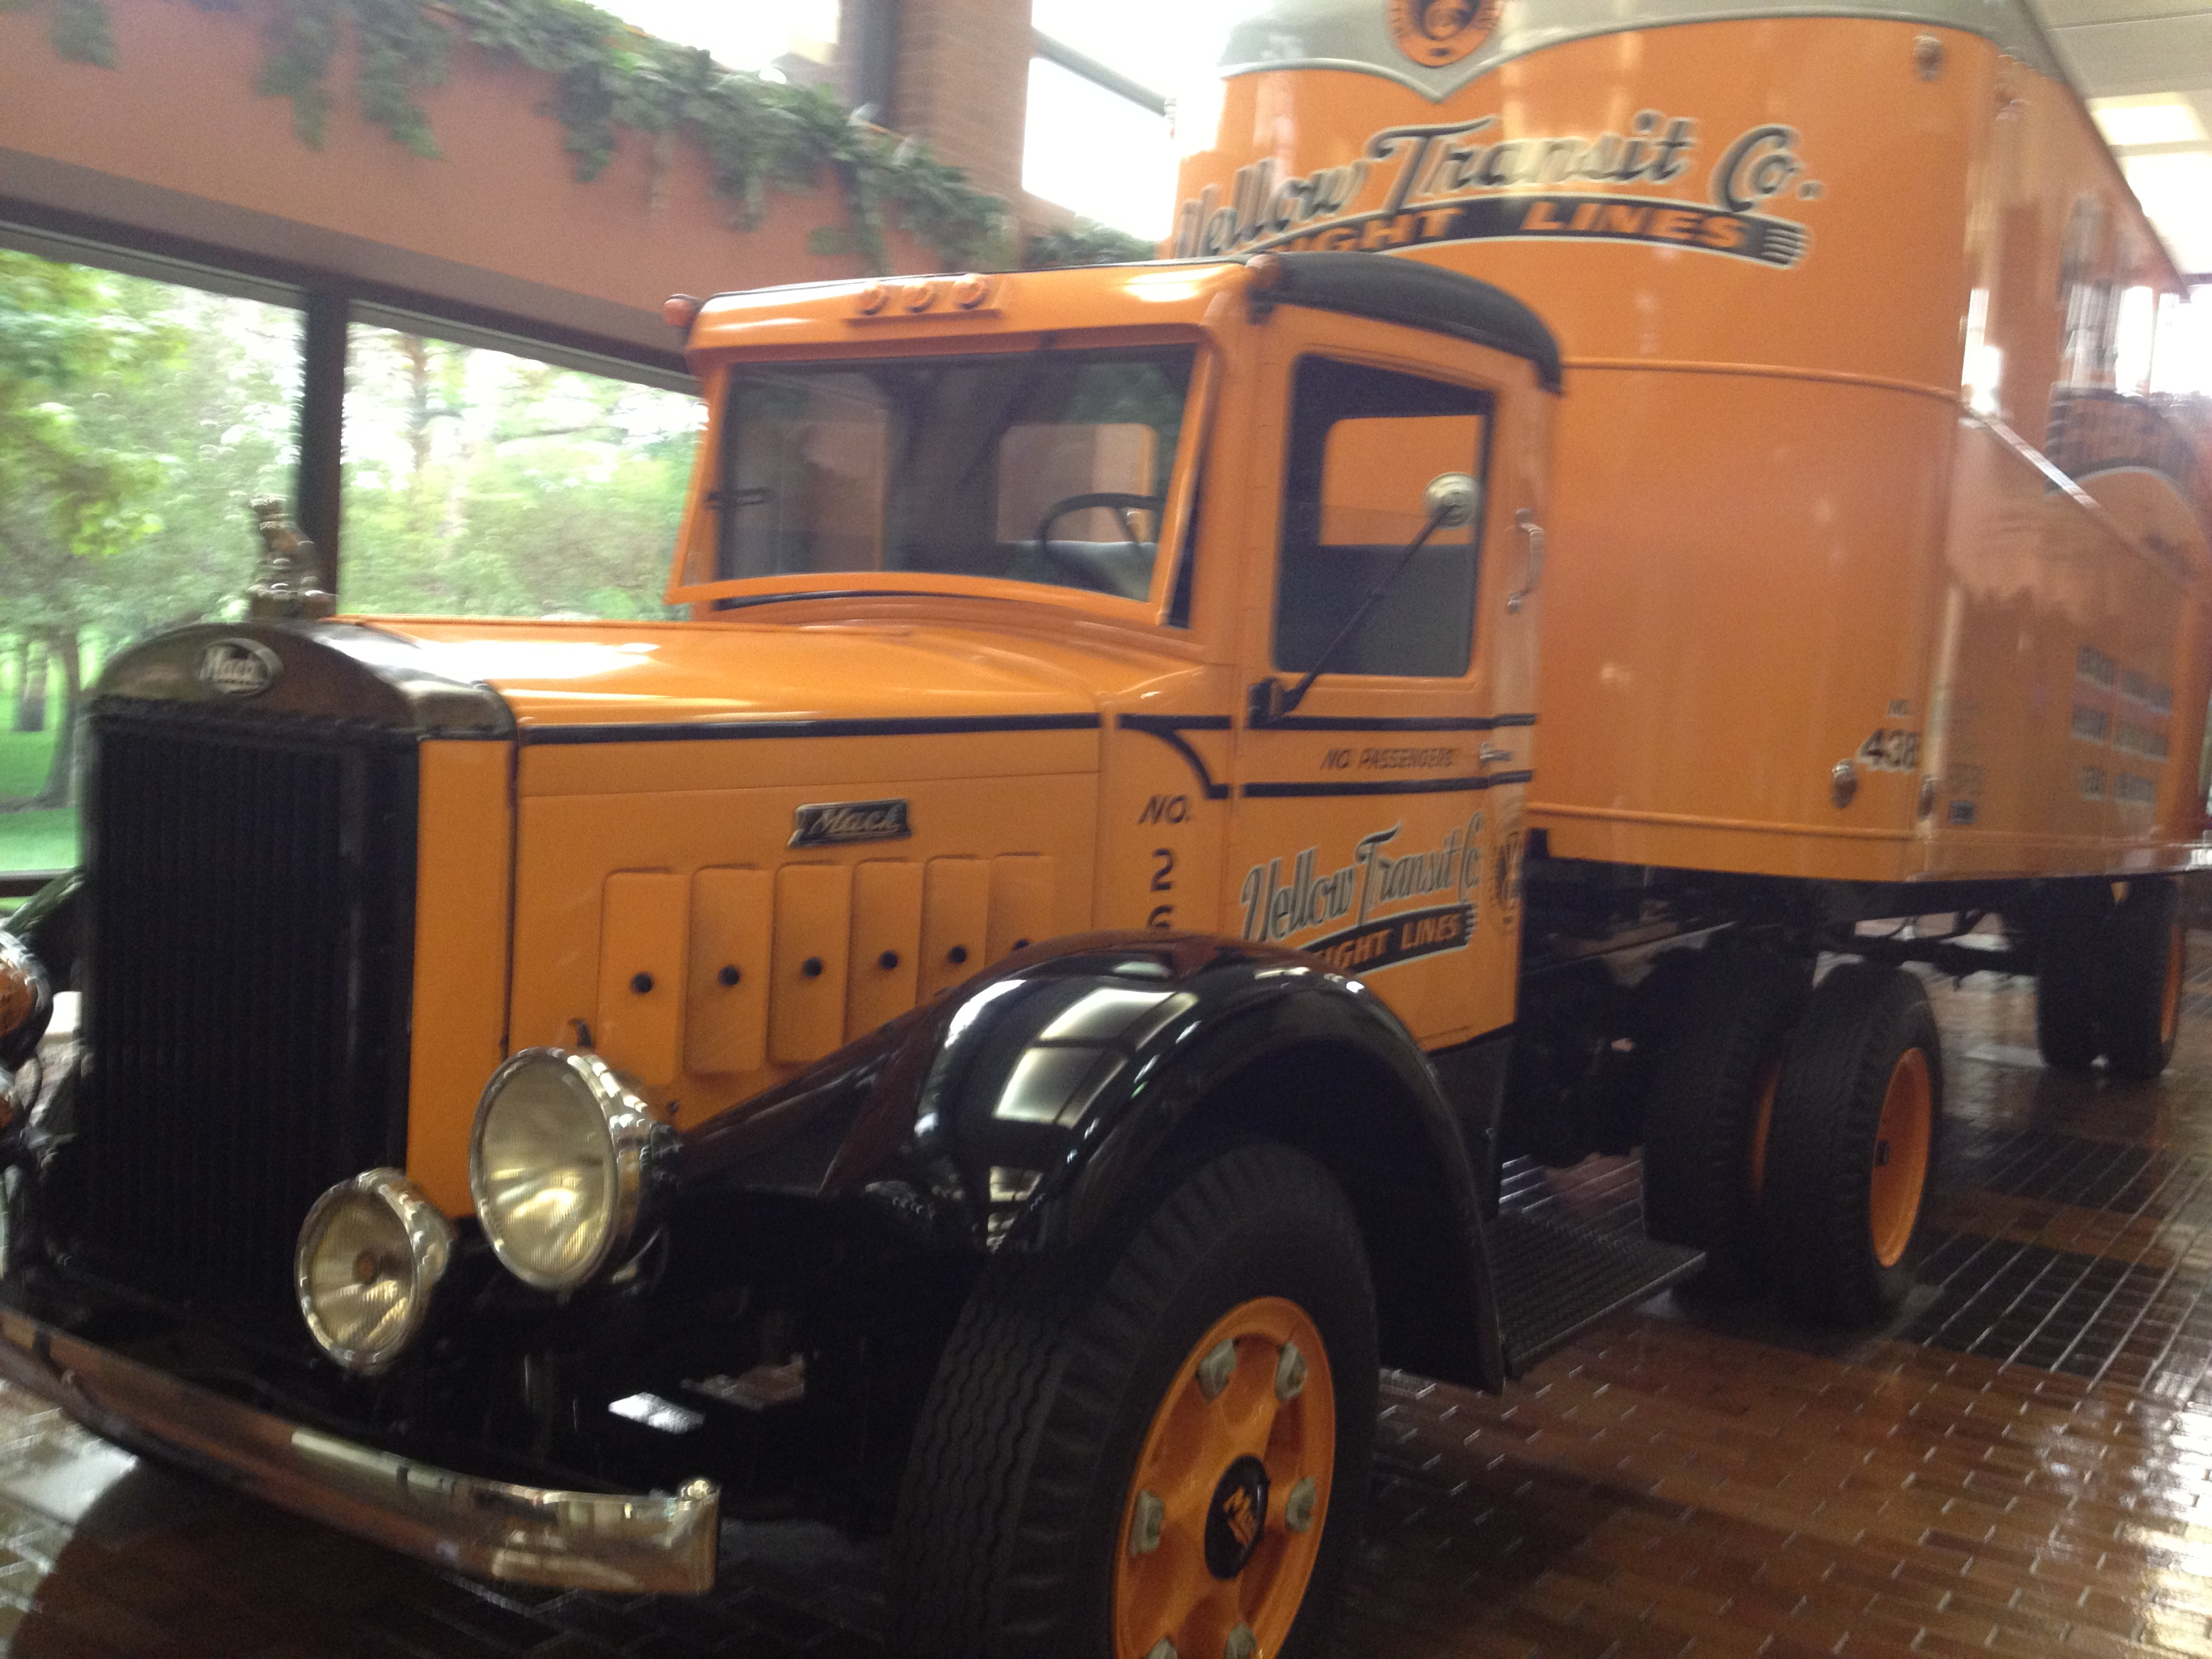 mack trucks wikipedia Mack Model B Pick Up history edit